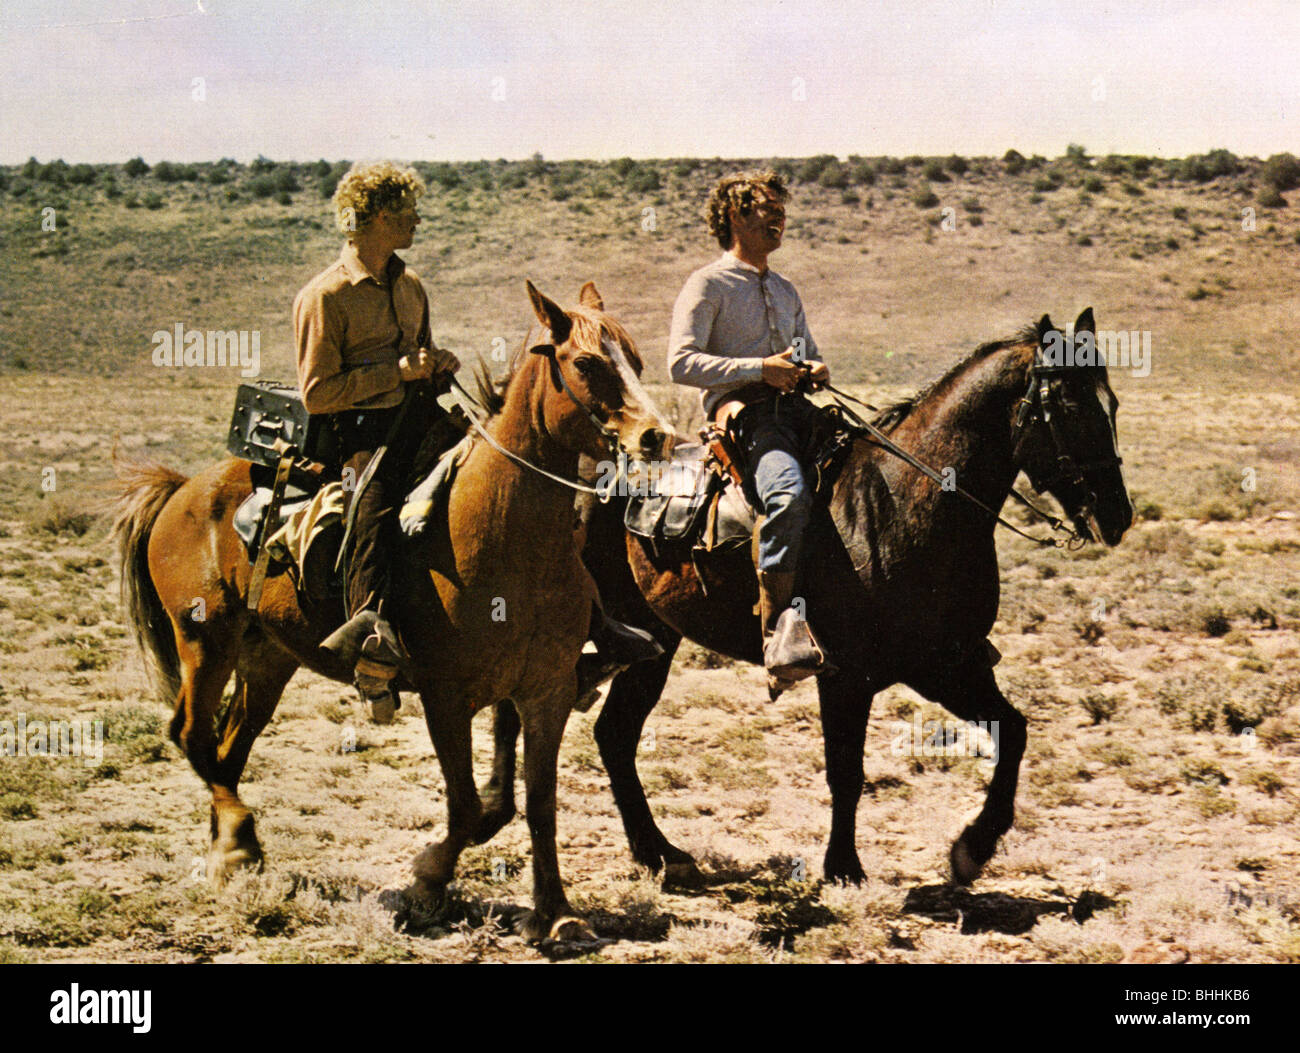 BUTCH AND SUNDANCE : THE EARLY DAYS - 1979 TCF film with Tom Berenger at right as Butch and William Katt as Sundance - Stock Image